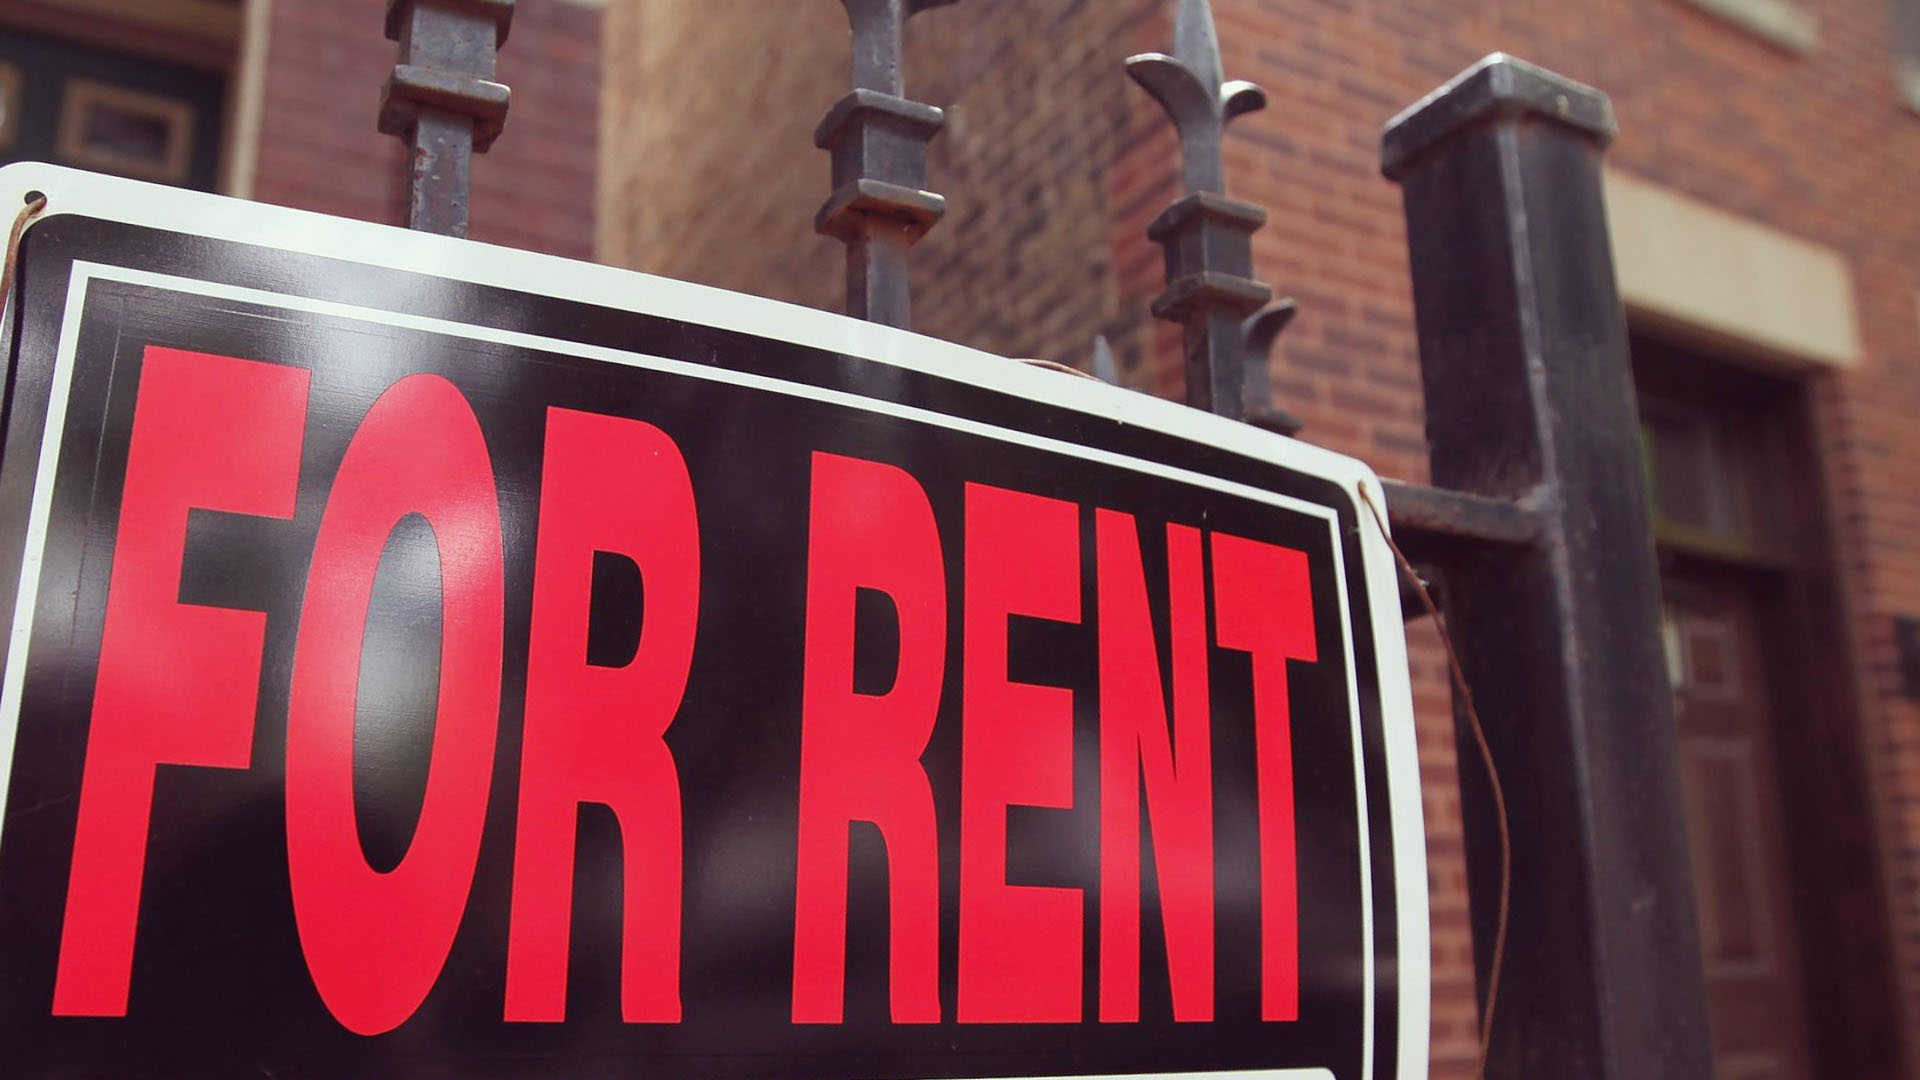 for-rent-apartments-sign-hd-pictures.jpg